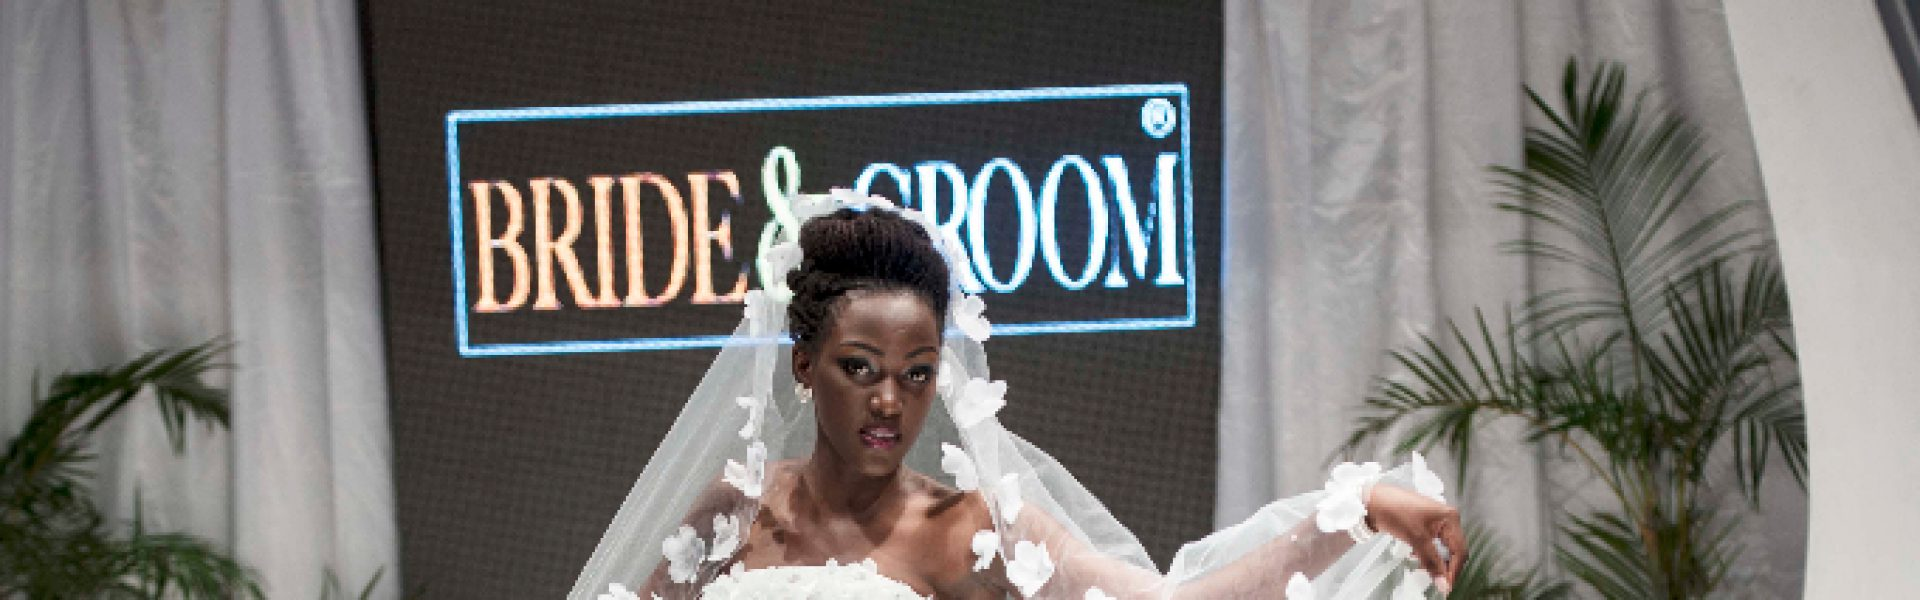 Bride & Groom Expo